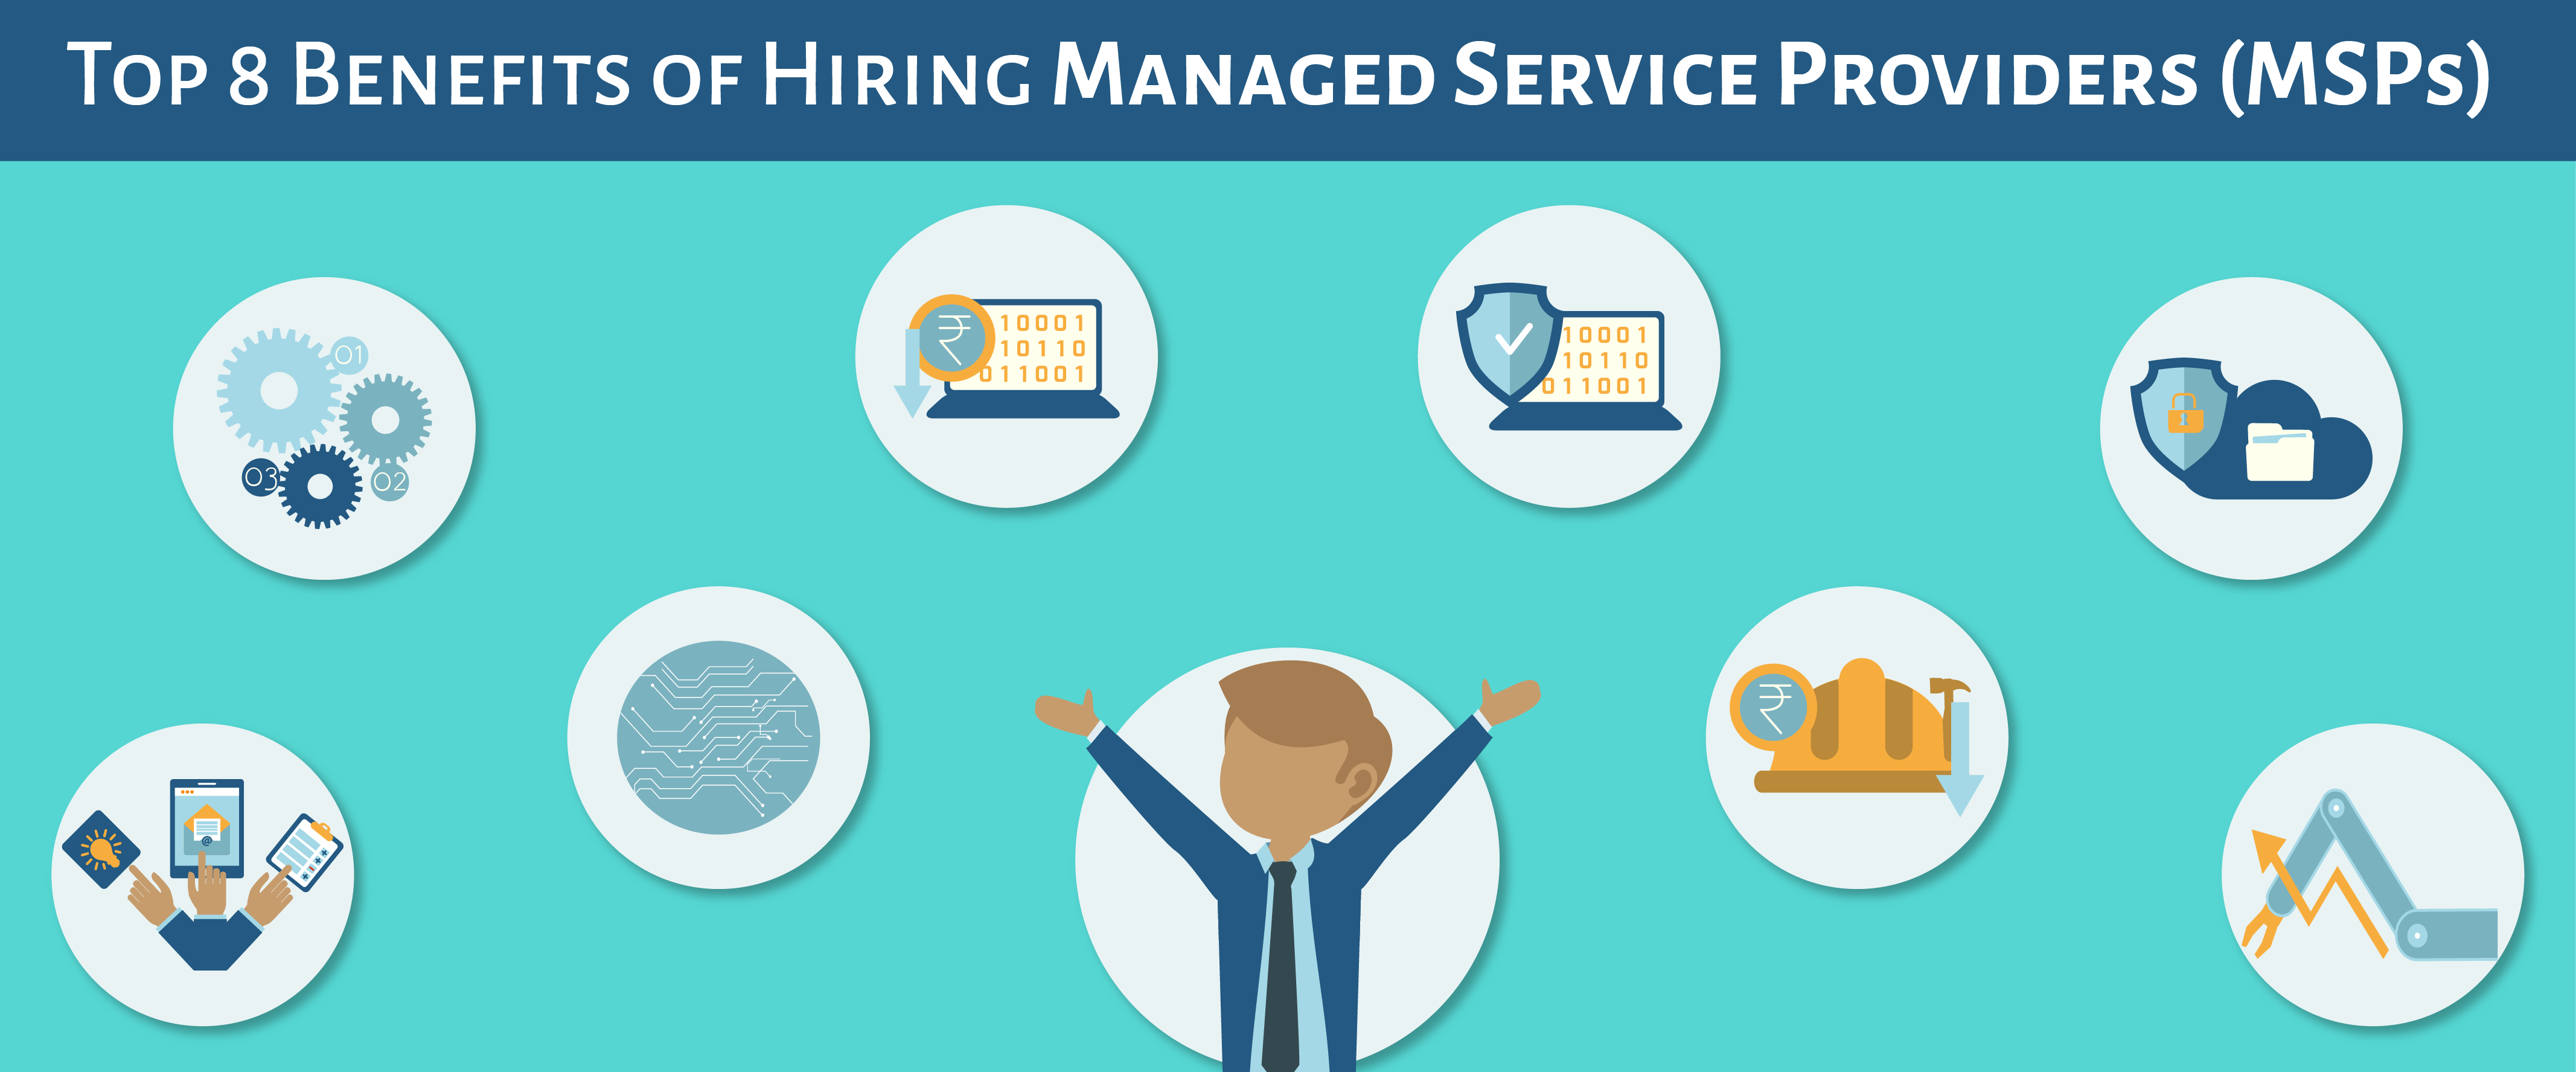 Top 8 Benefits of Hiring Managed Service Providers (MSPs)